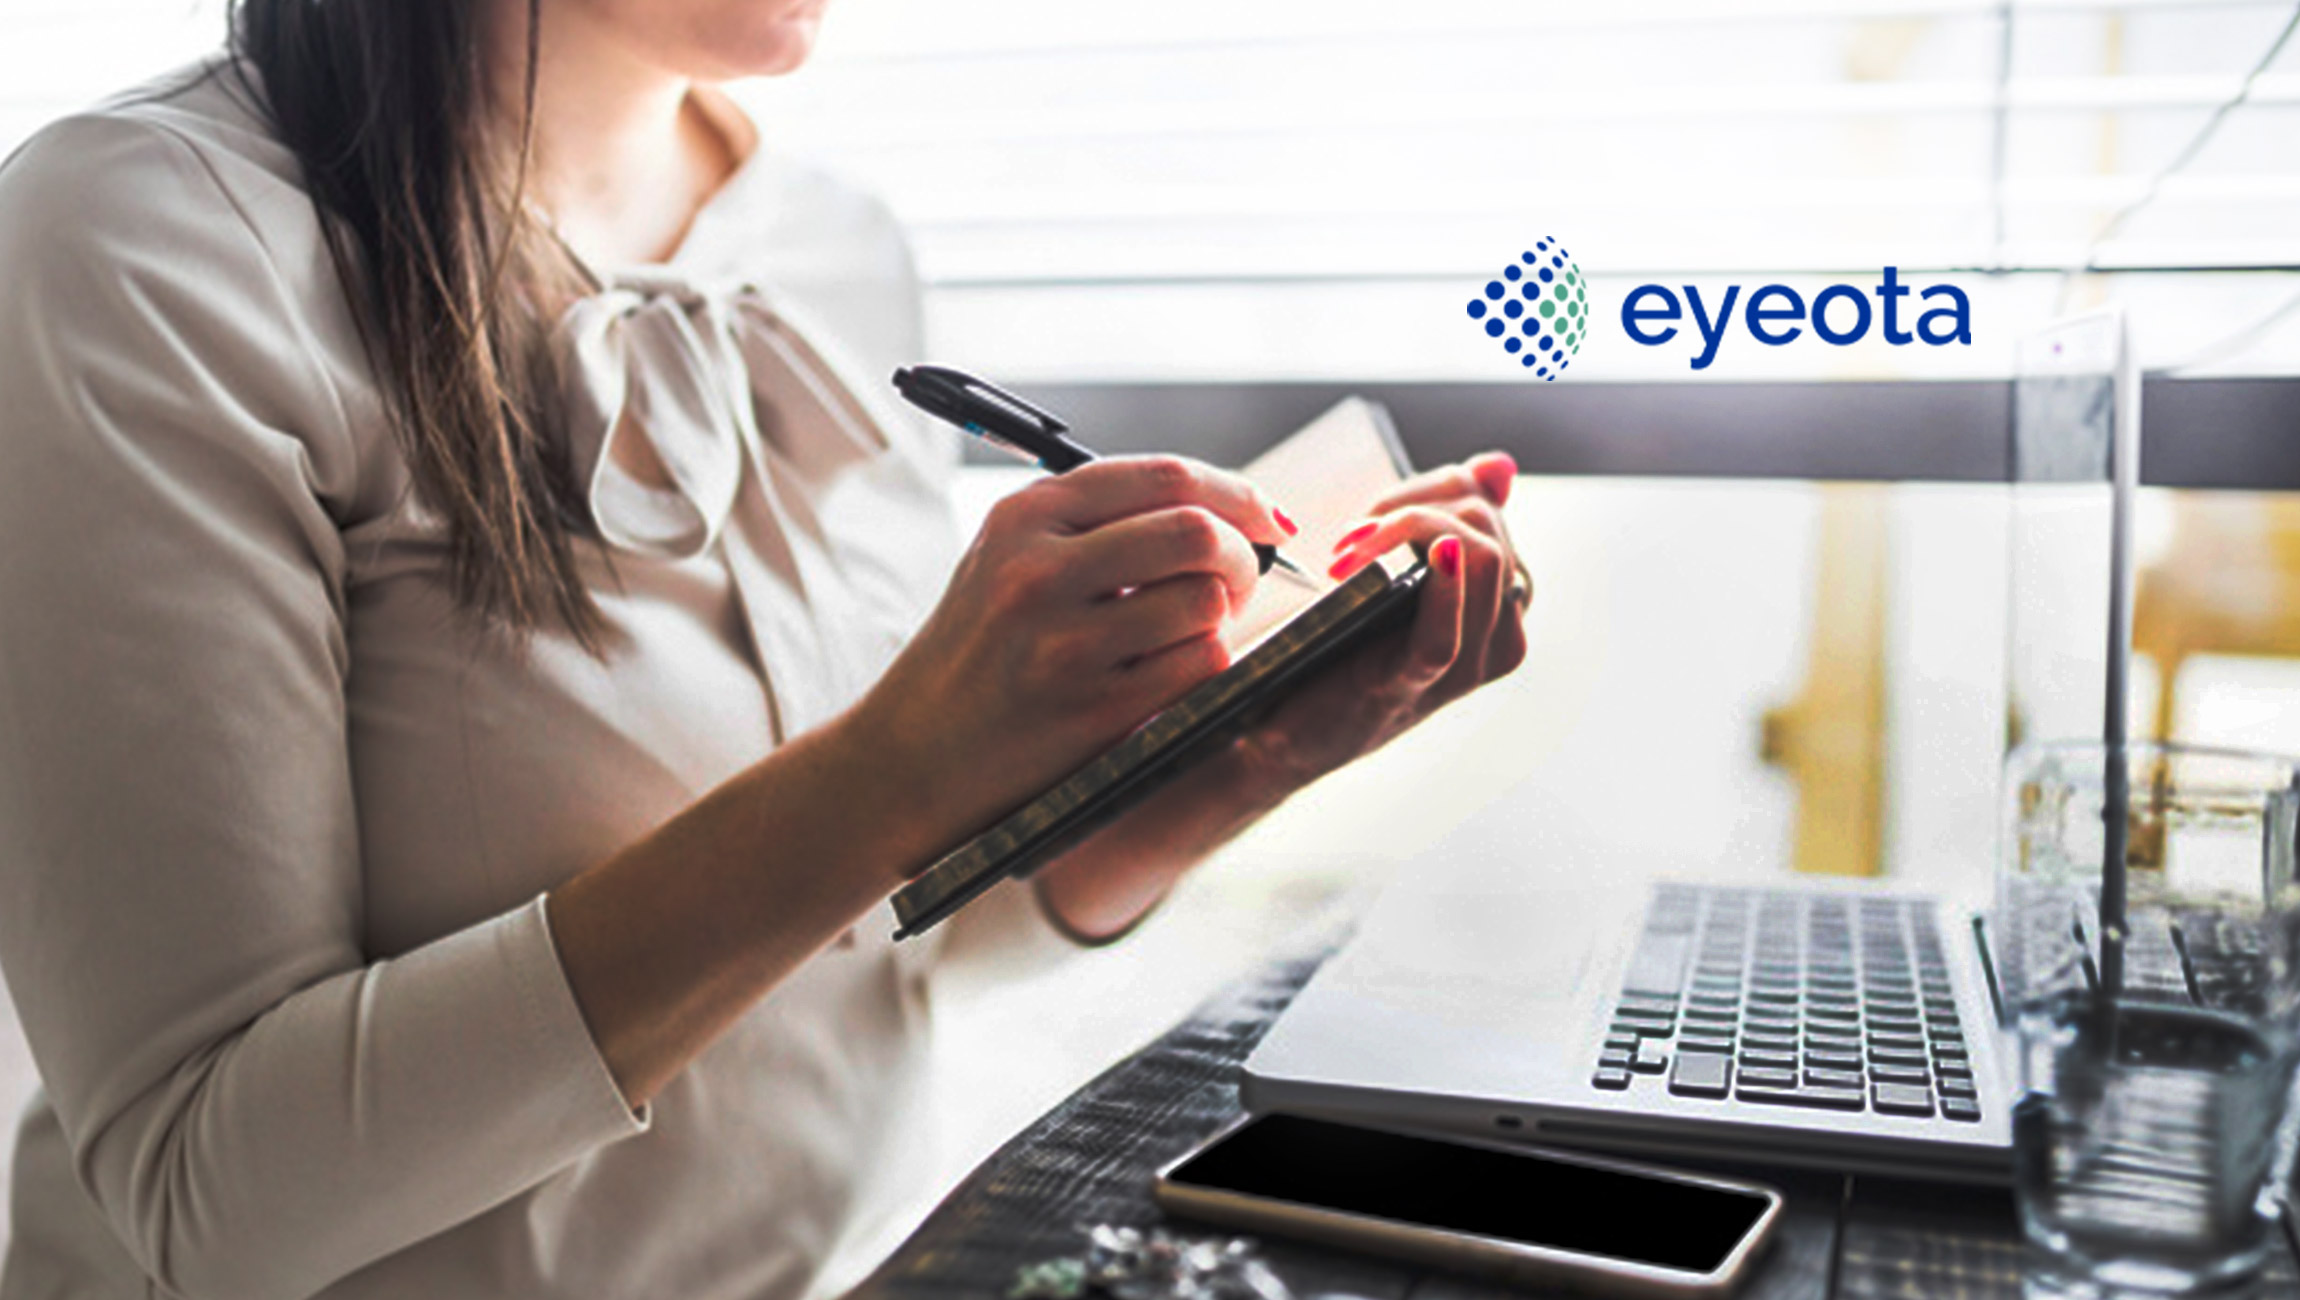 Eyeota Expands GfK Onboarding Agreement into New Markets